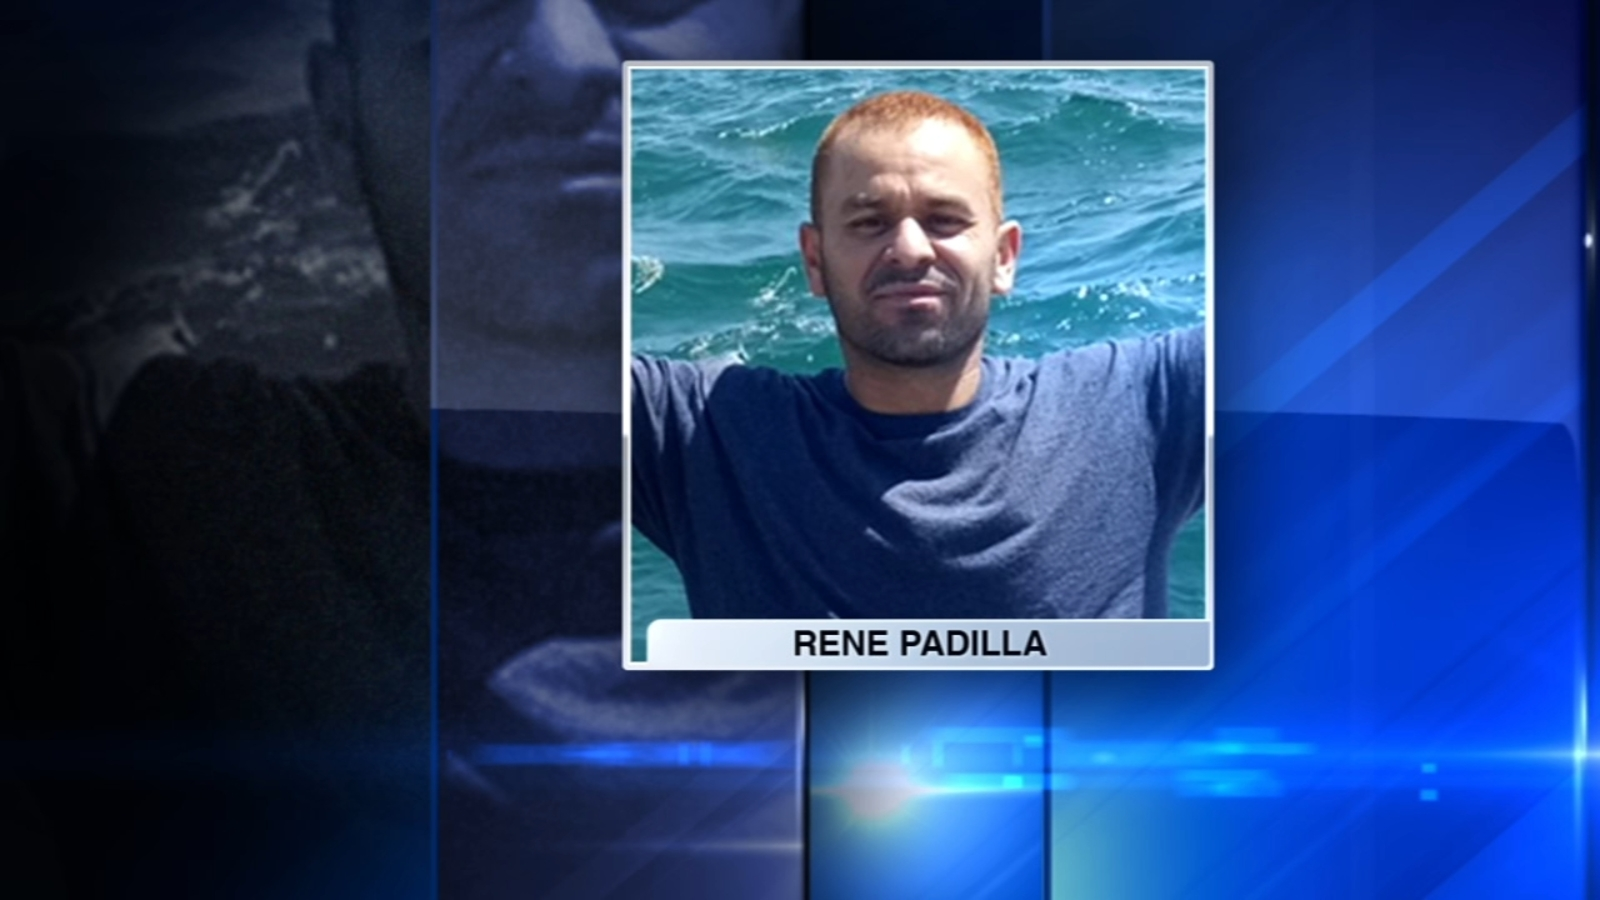 Man who died in Lake Michigan was trying to save daughter, 12, who slipped on rock